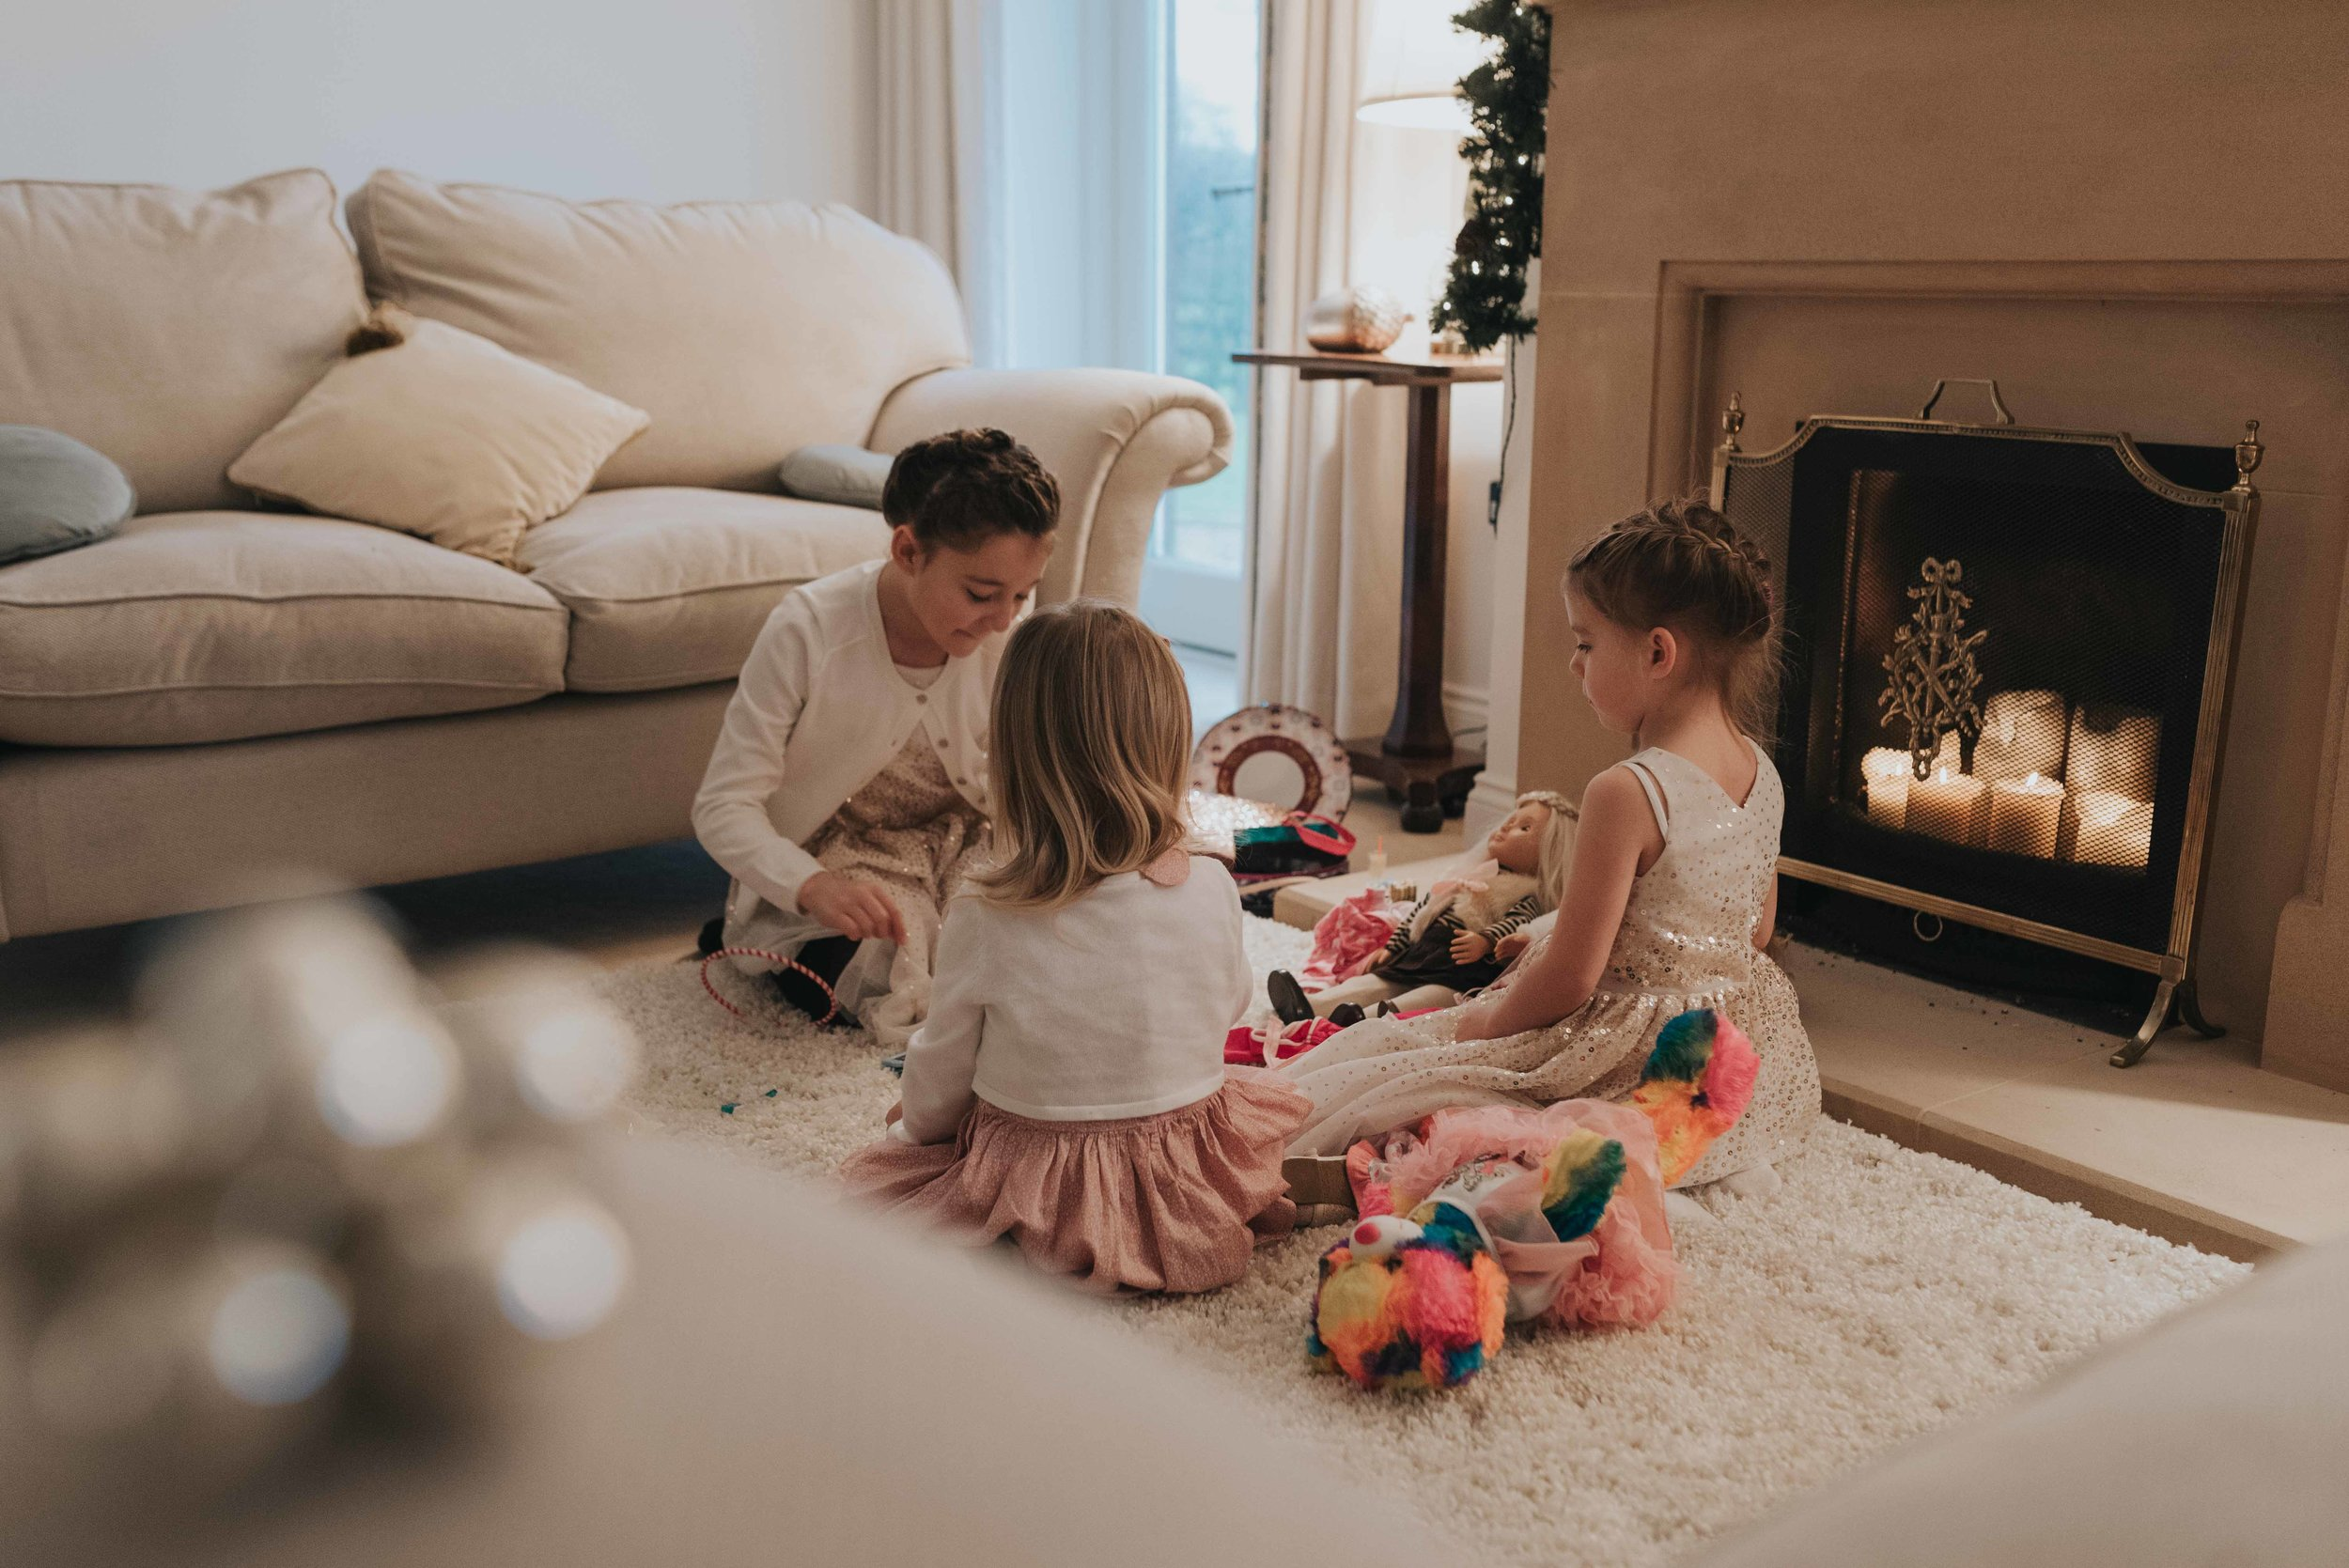 Three children sit together on a rug in front of the fireplace during Christening celebrations.